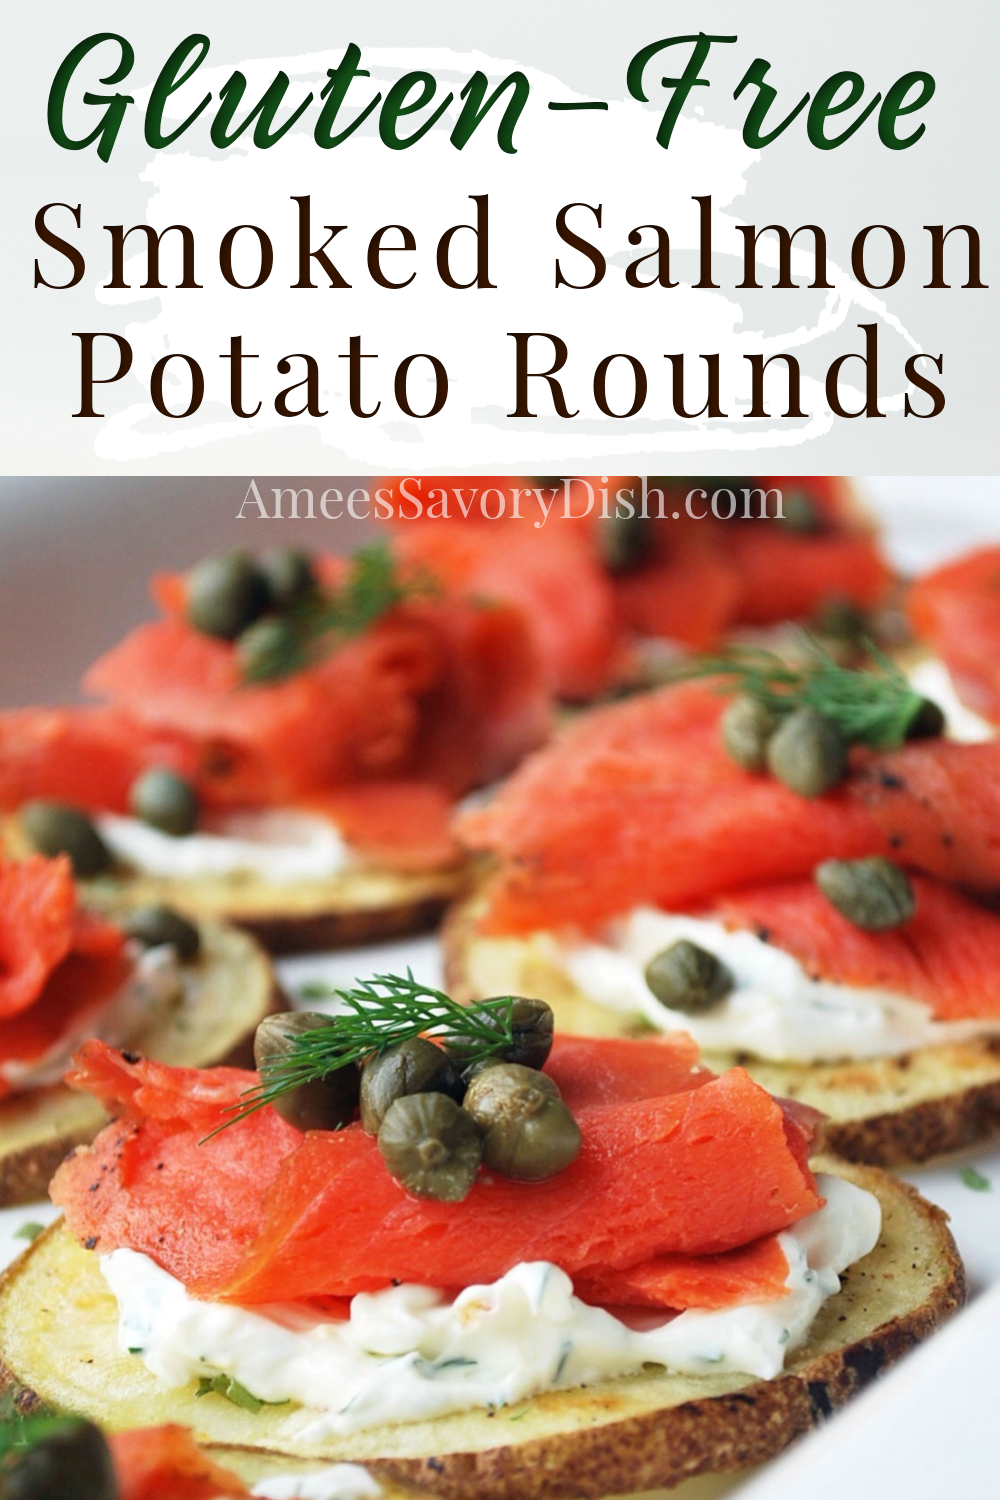 This delicious appetizer recipe is a twist on potato skins made with thinly sliced roasted potato slices topped with a creamy yogurt chive sauce, wild-caught smoked salmon, and capers. These potato rounds are a perfect healthy Superbowl appetizer or elegant, bite-sized, snack for your next gathering. #smokedsalmon #salmonappetizer #glutenfreeappetizers #glutenfreepartyfood #glutenfreerecipe #potatorecipe #potatoskins #smokedsalmon #glutenfree via @Ameessavorydish